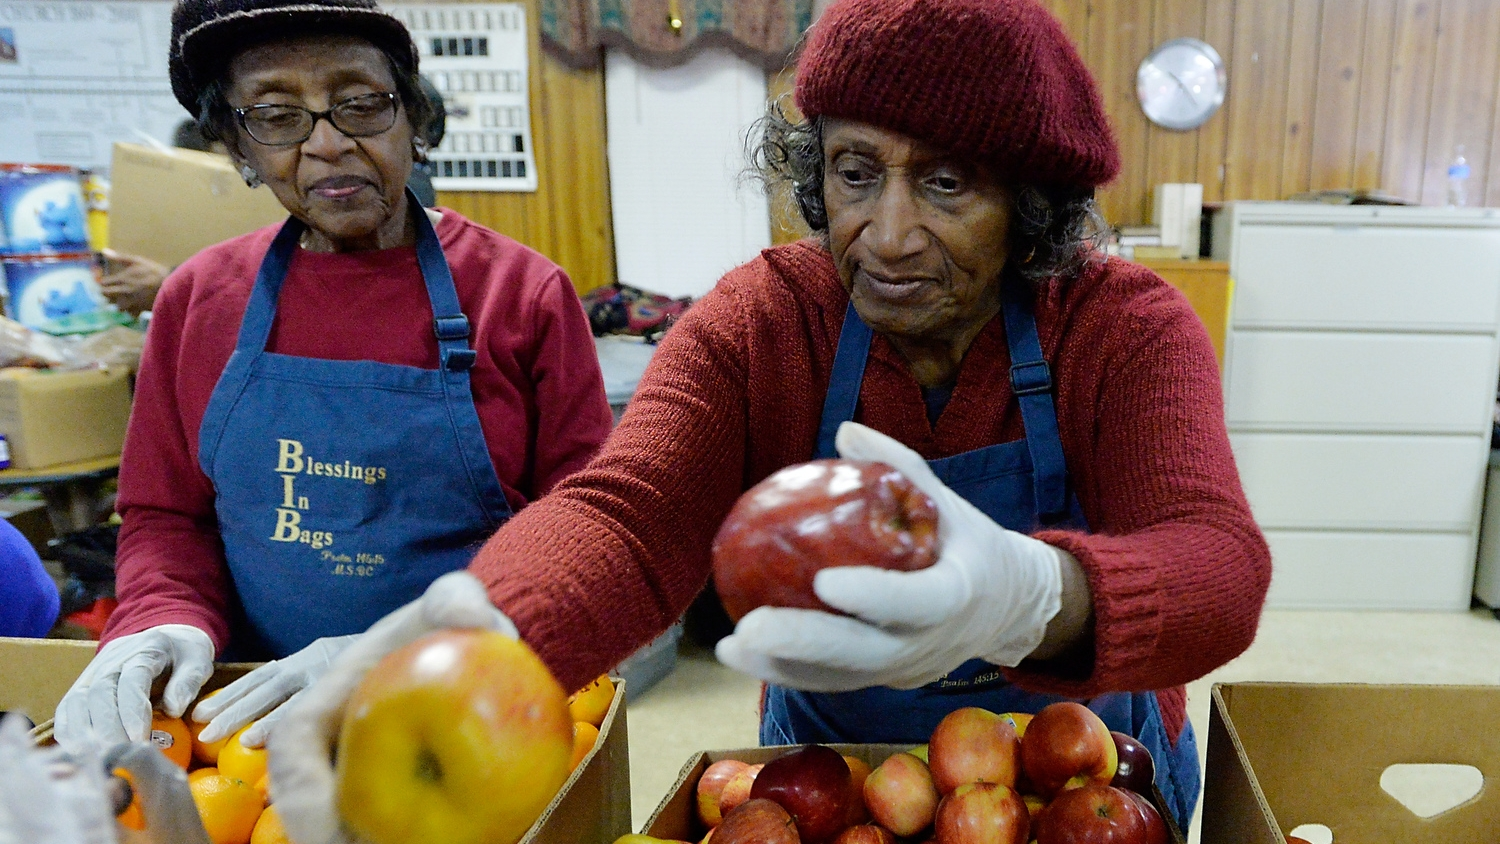 Volunteer Alene Dixon, alongside Doris Alston, hands out free, fresh apples to those in need of food at the Martin Street Mobile Market in Raleigh, N.C. on Saturday, December 10, 2016. The Inter-Faith Food Shuttle provides some of the fresh food for market. (Photo by Sara. D. Davis)